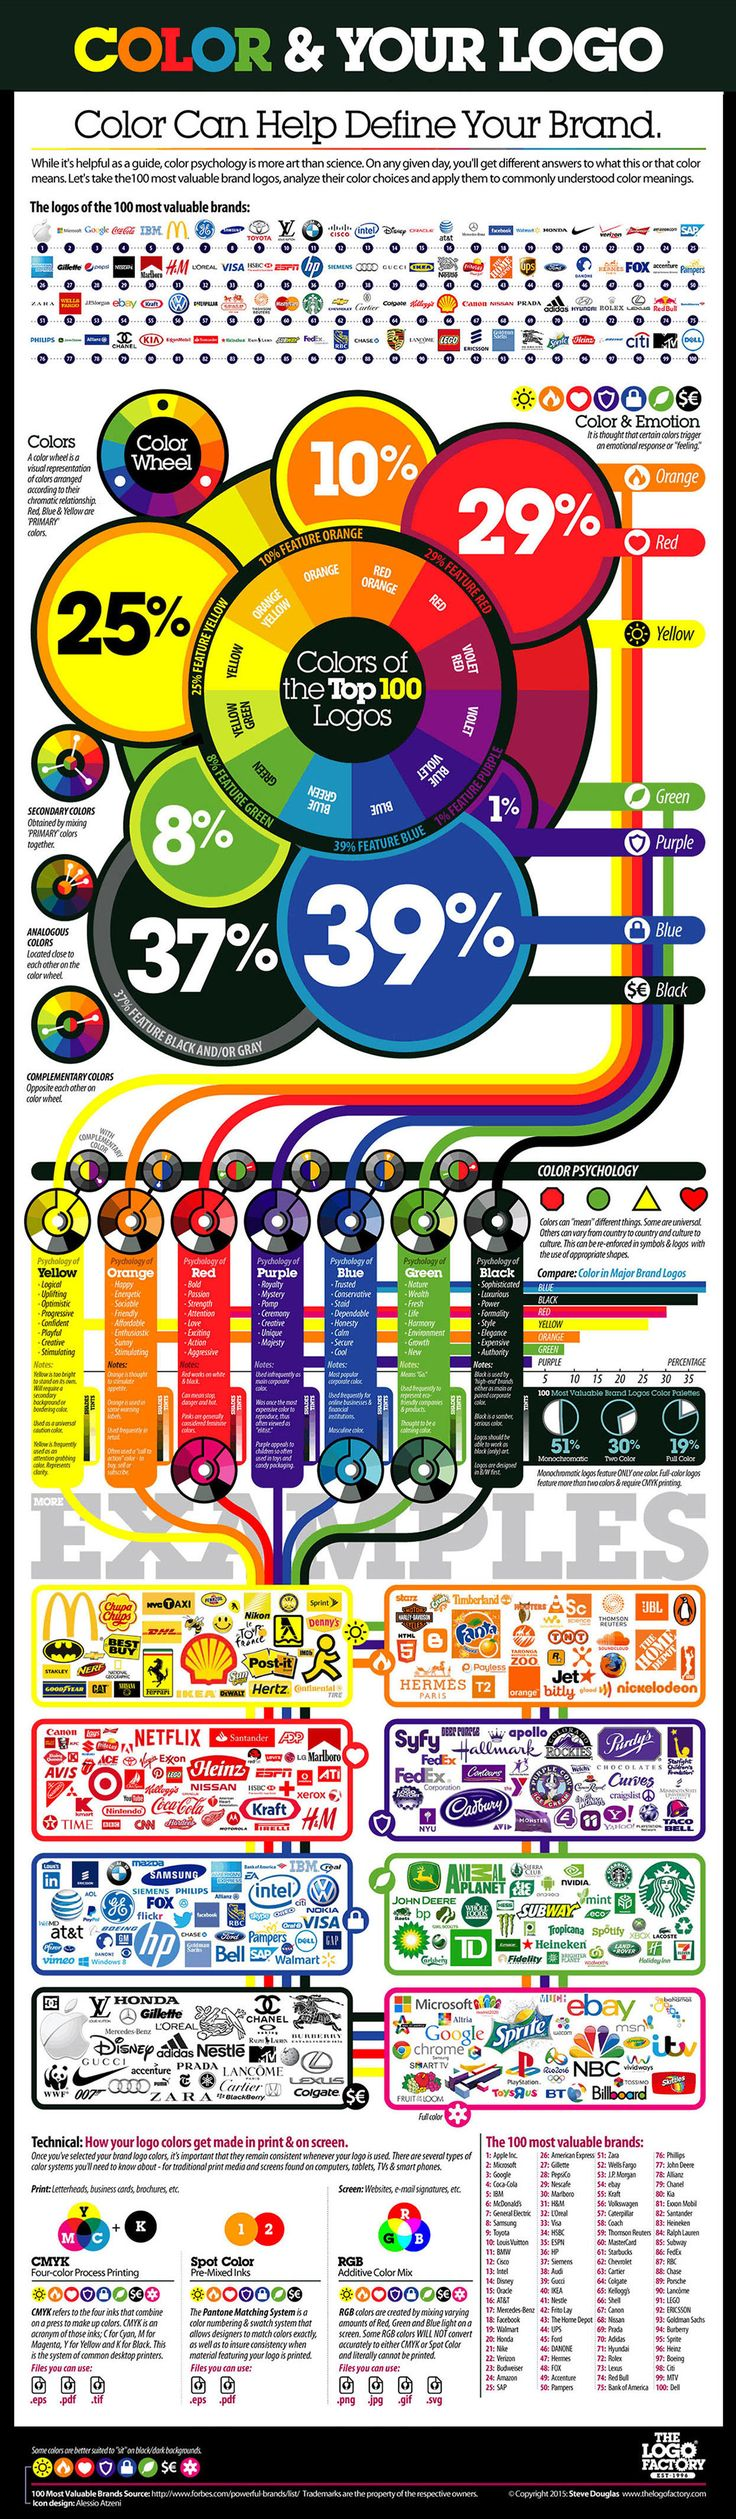 The Best Colors for Logo Design Infographic. Topic: graphic designer, logos, color psychology, company logo in coreldraw, photoshop and illustrator.